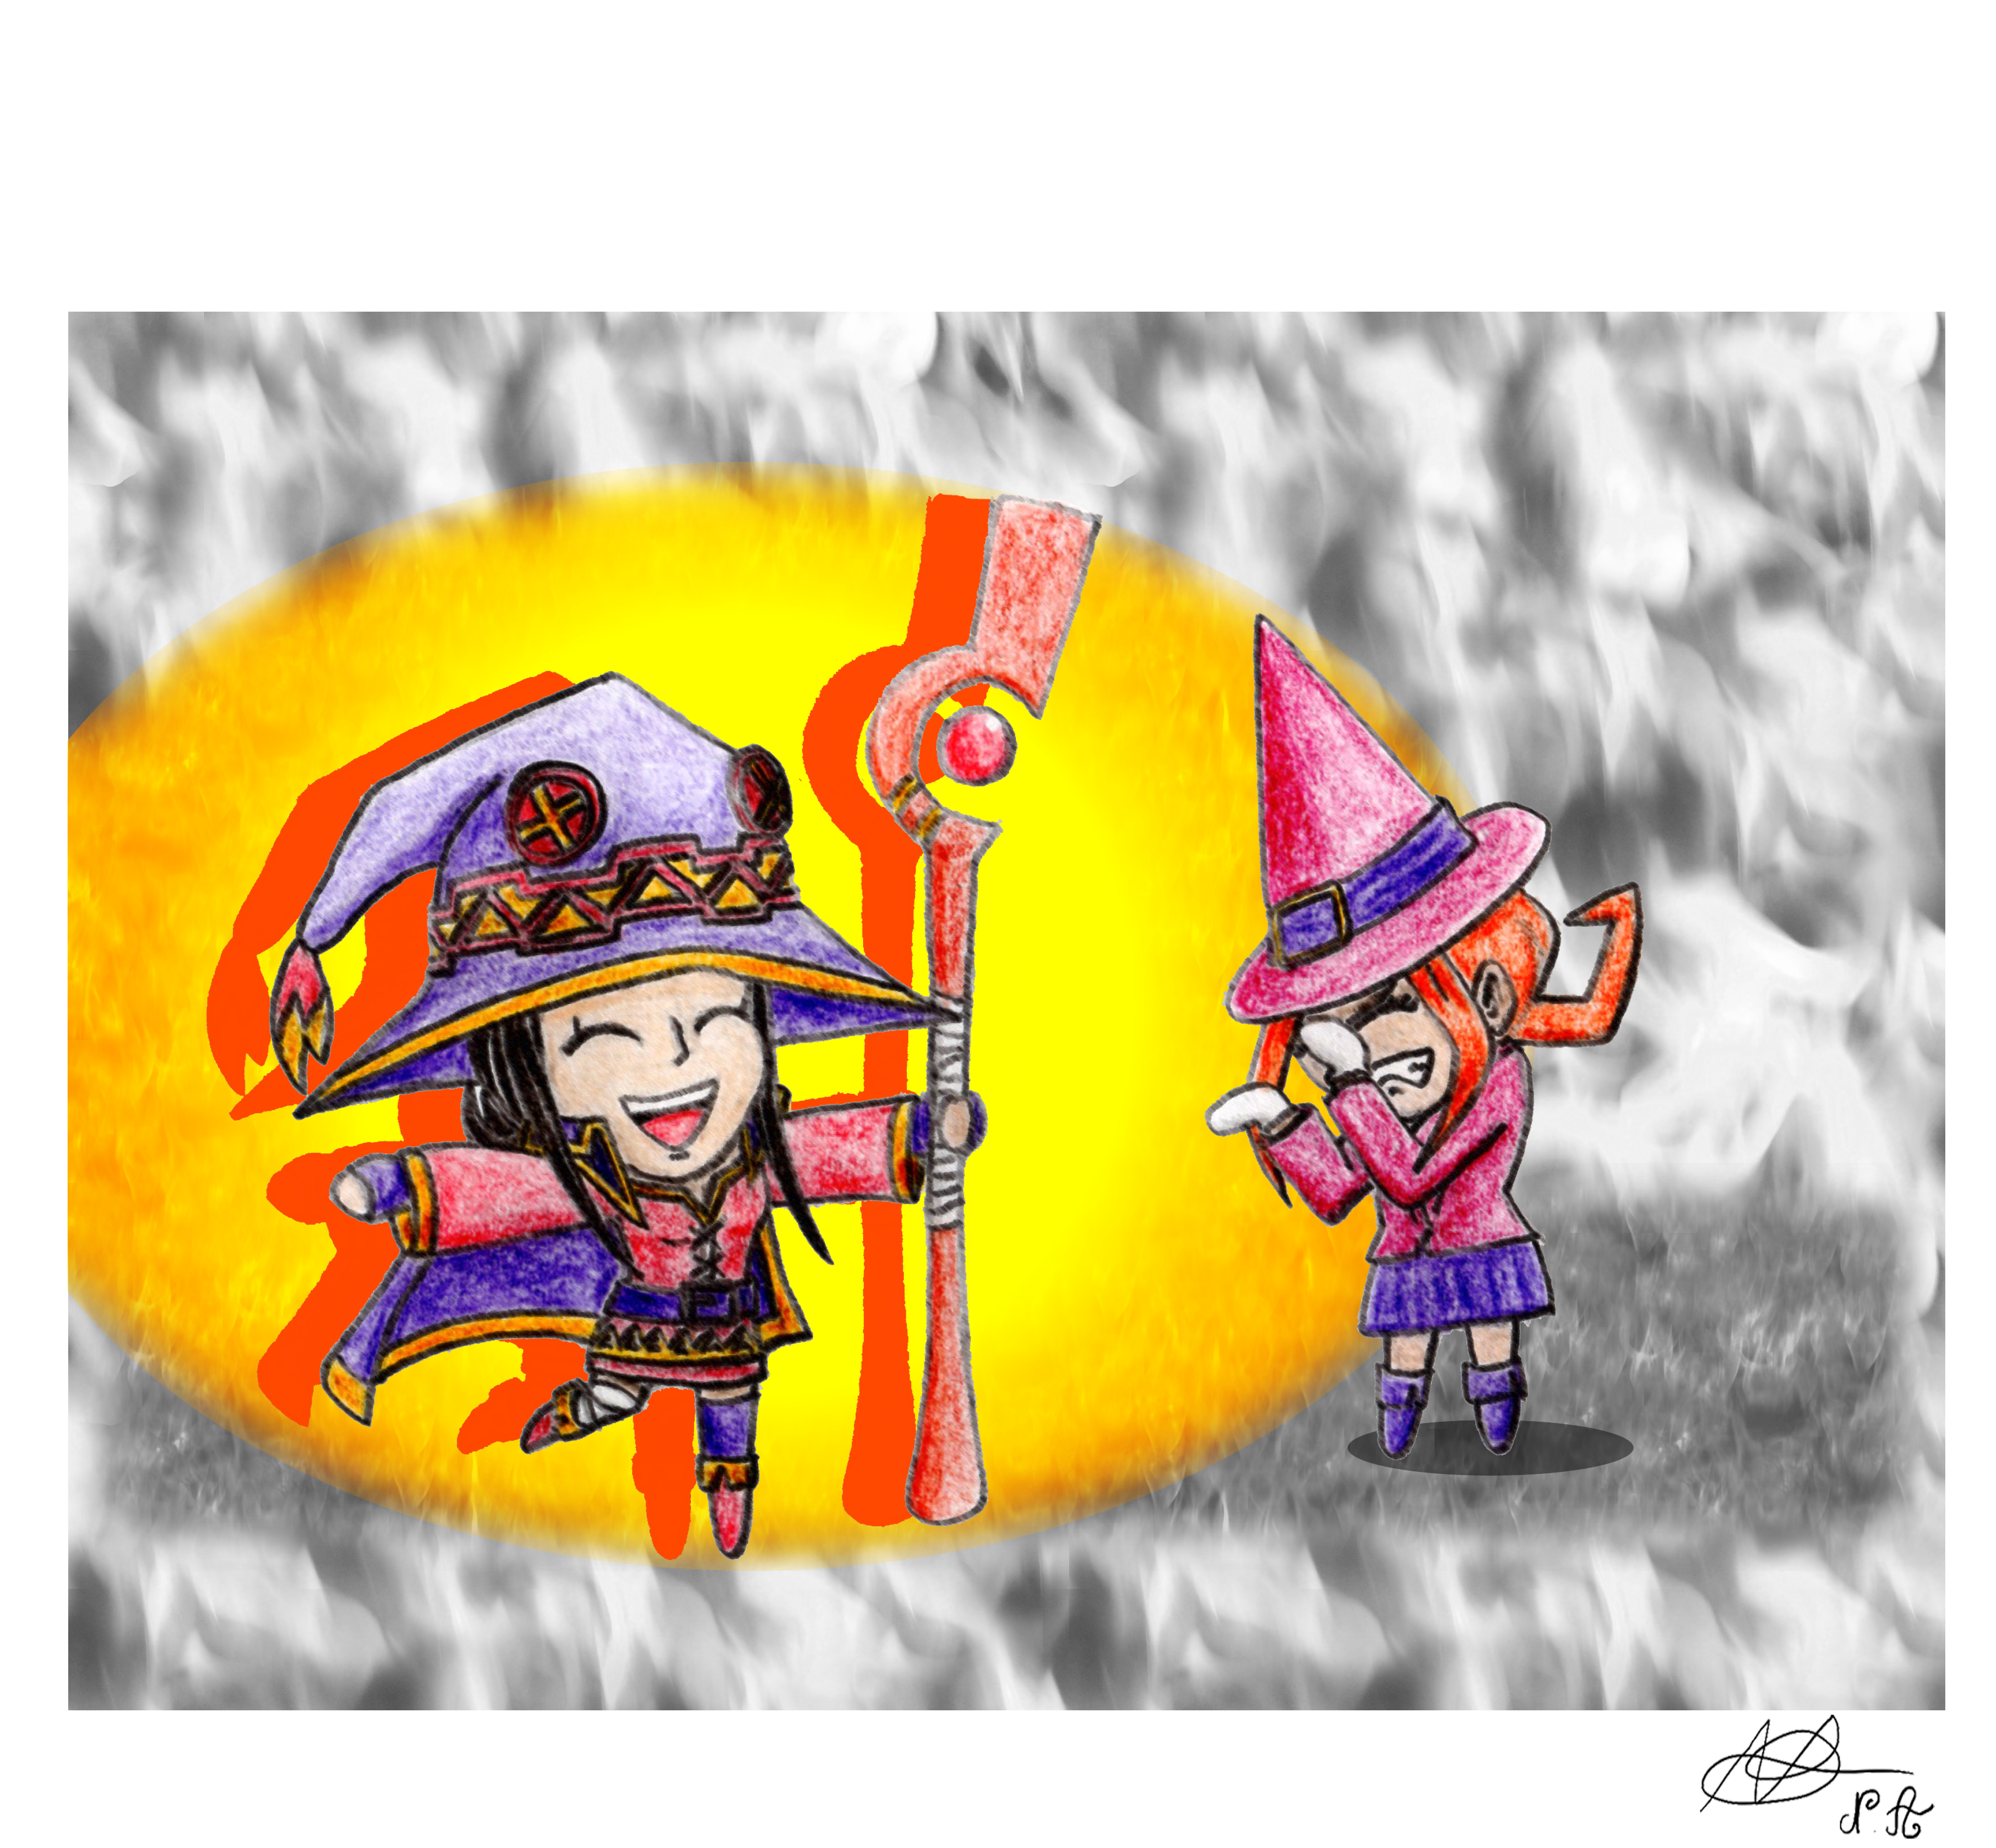 img/05/gfx_Pepper-and-Carrot-MINI_by_Nicolas_Artance_E05.png